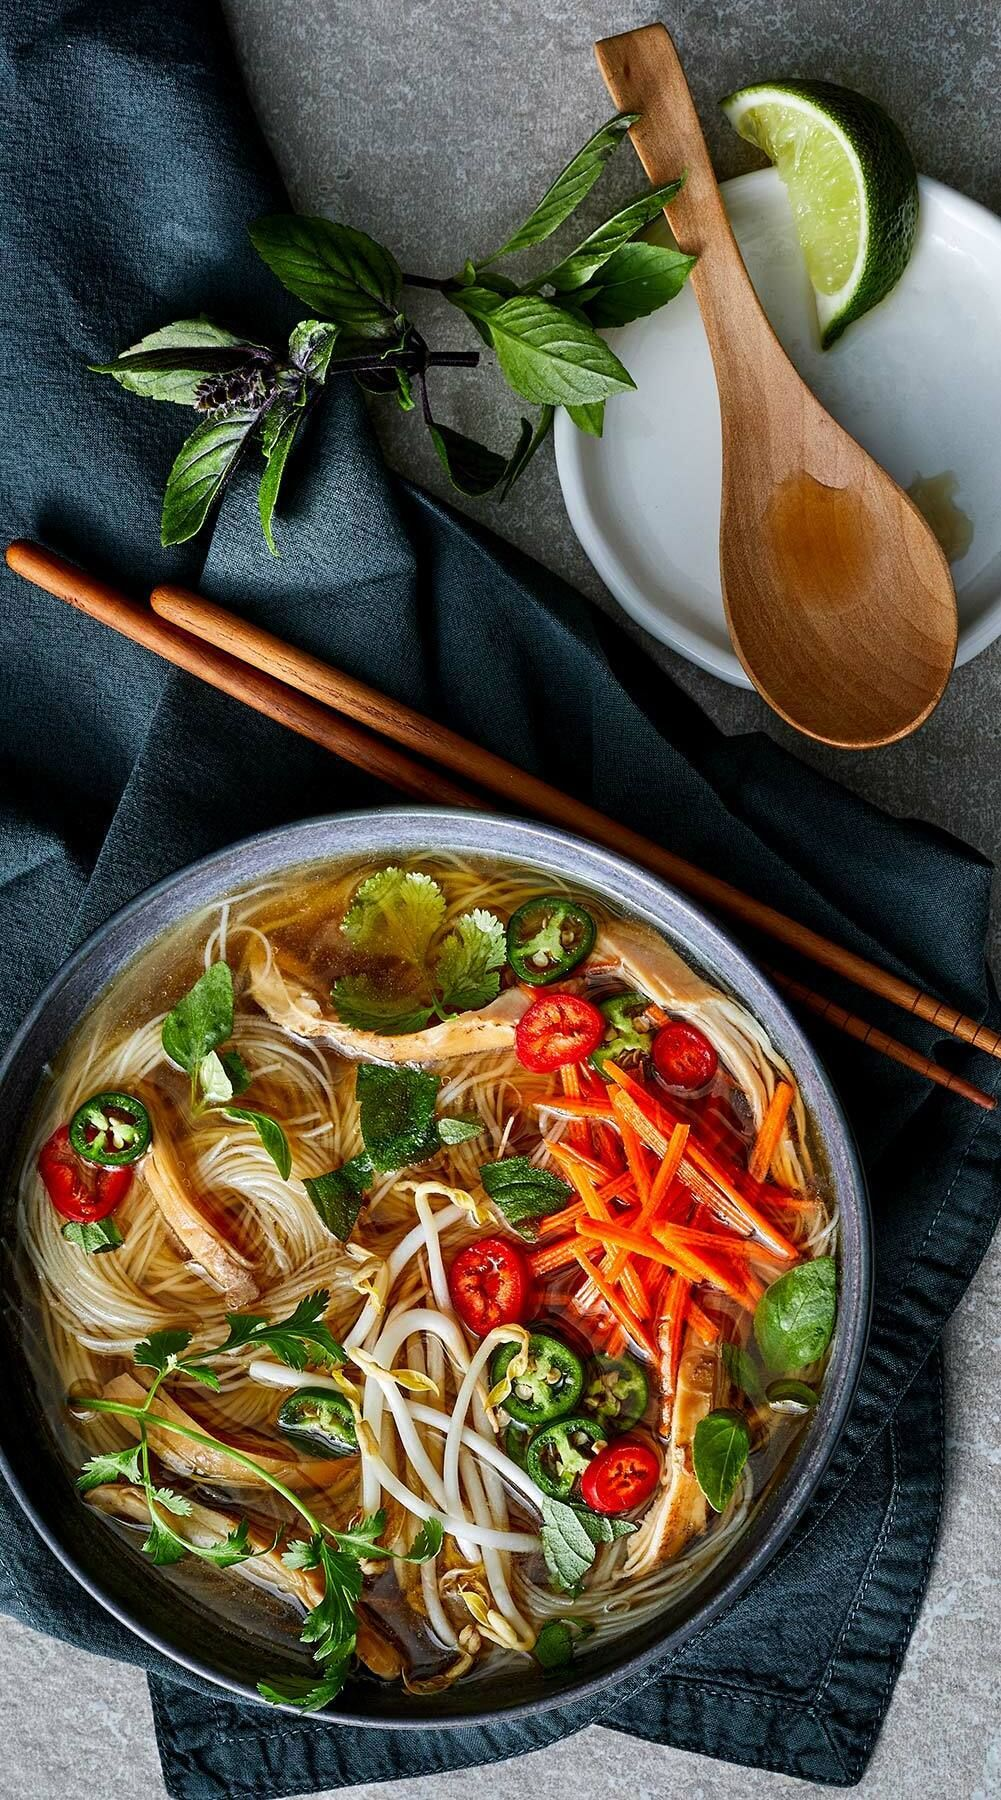 Instant Pot Chicken Pho This Instant Pot Pho Recipe Allows You To Enjoy All The Delicious Flavors Of The Tradi In 2020 Chicken Pho Pho Recipe Instant Pot Pho Recipe